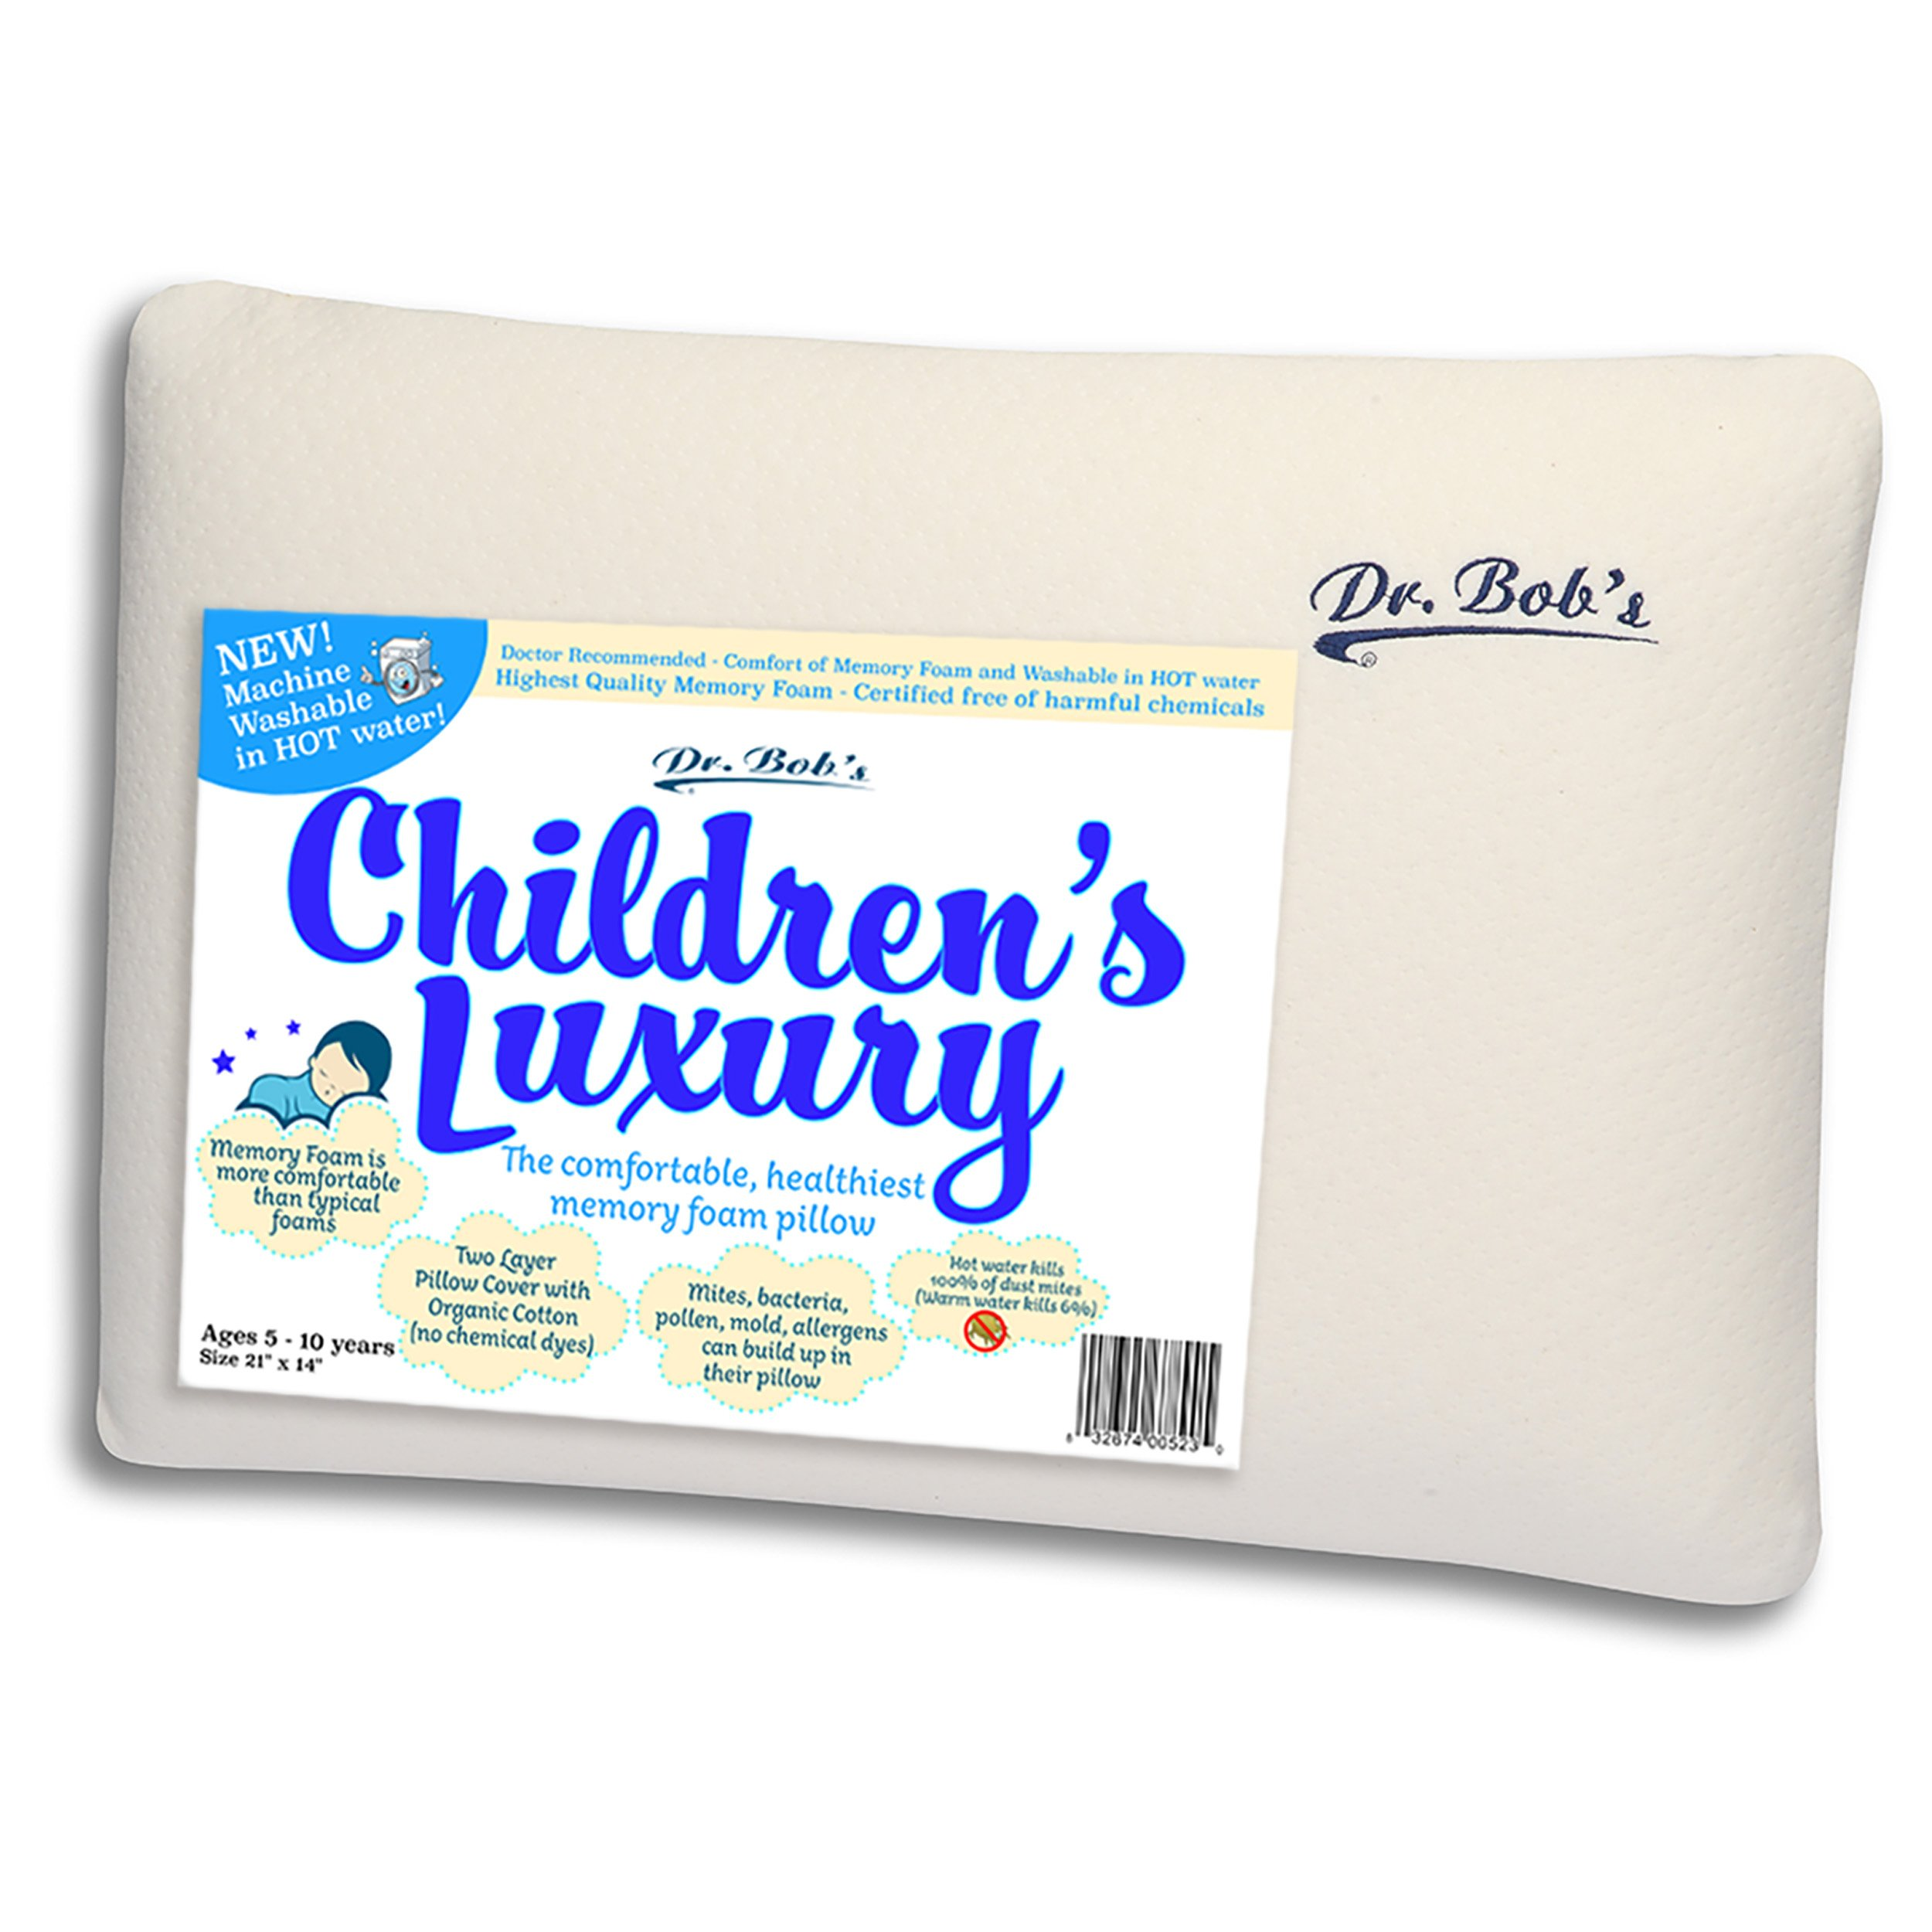 Children's Luxury - Kids Bed Pillow by Dr. Bob's- New - Memory Foam Machine Washable in HOT Water. Sanitize Your Pillows- Organic Cotton Cover- 2 Sizes -Also Toddler's Luxury Bed Pillow